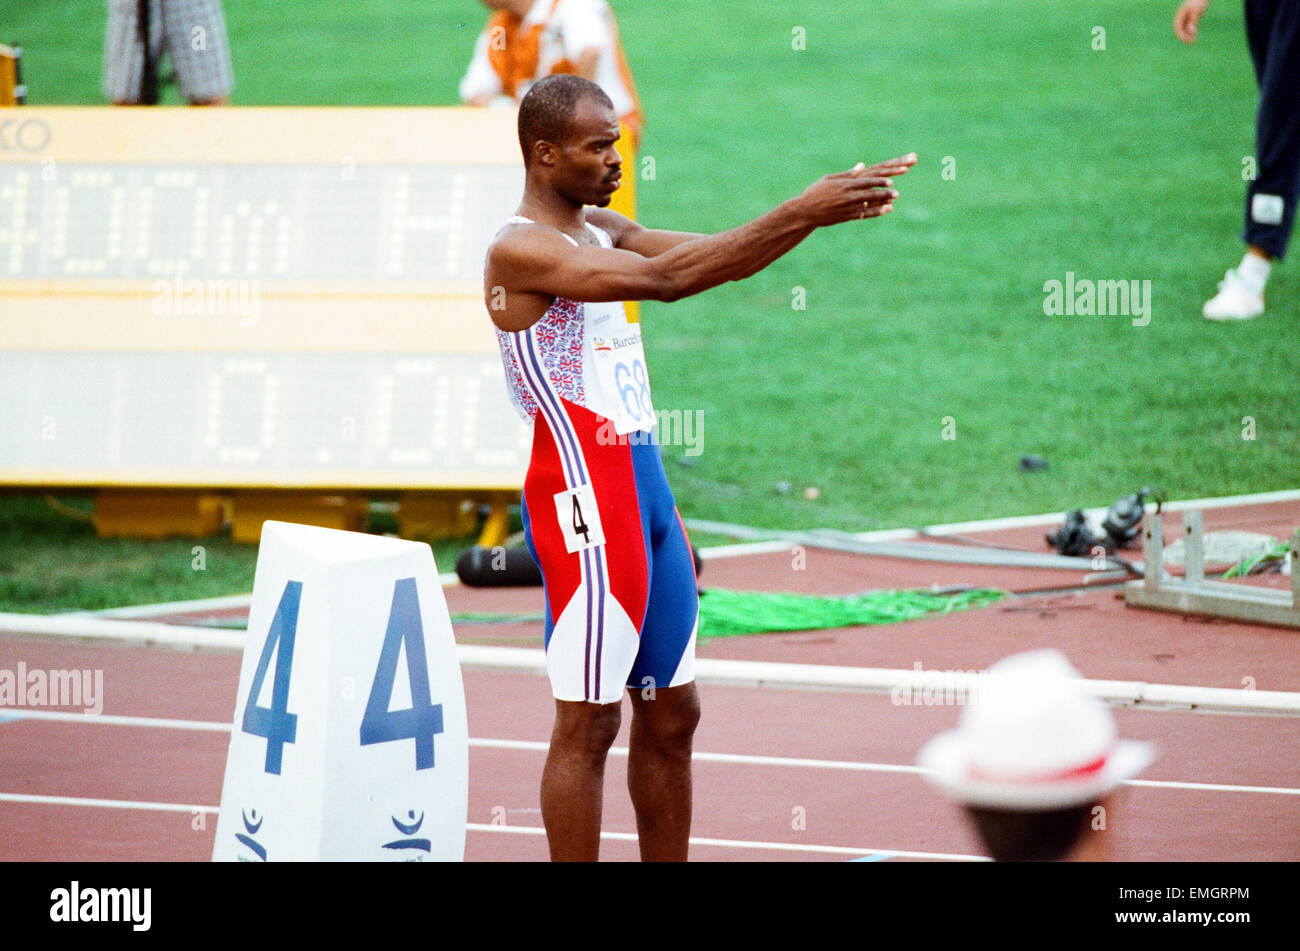 1992 Olympic Games in Barcelona, Spain. Mens 400 Metres Hurdles. Great Britain's Kriss Akabusi. 2nd August 1992. - Stock Image